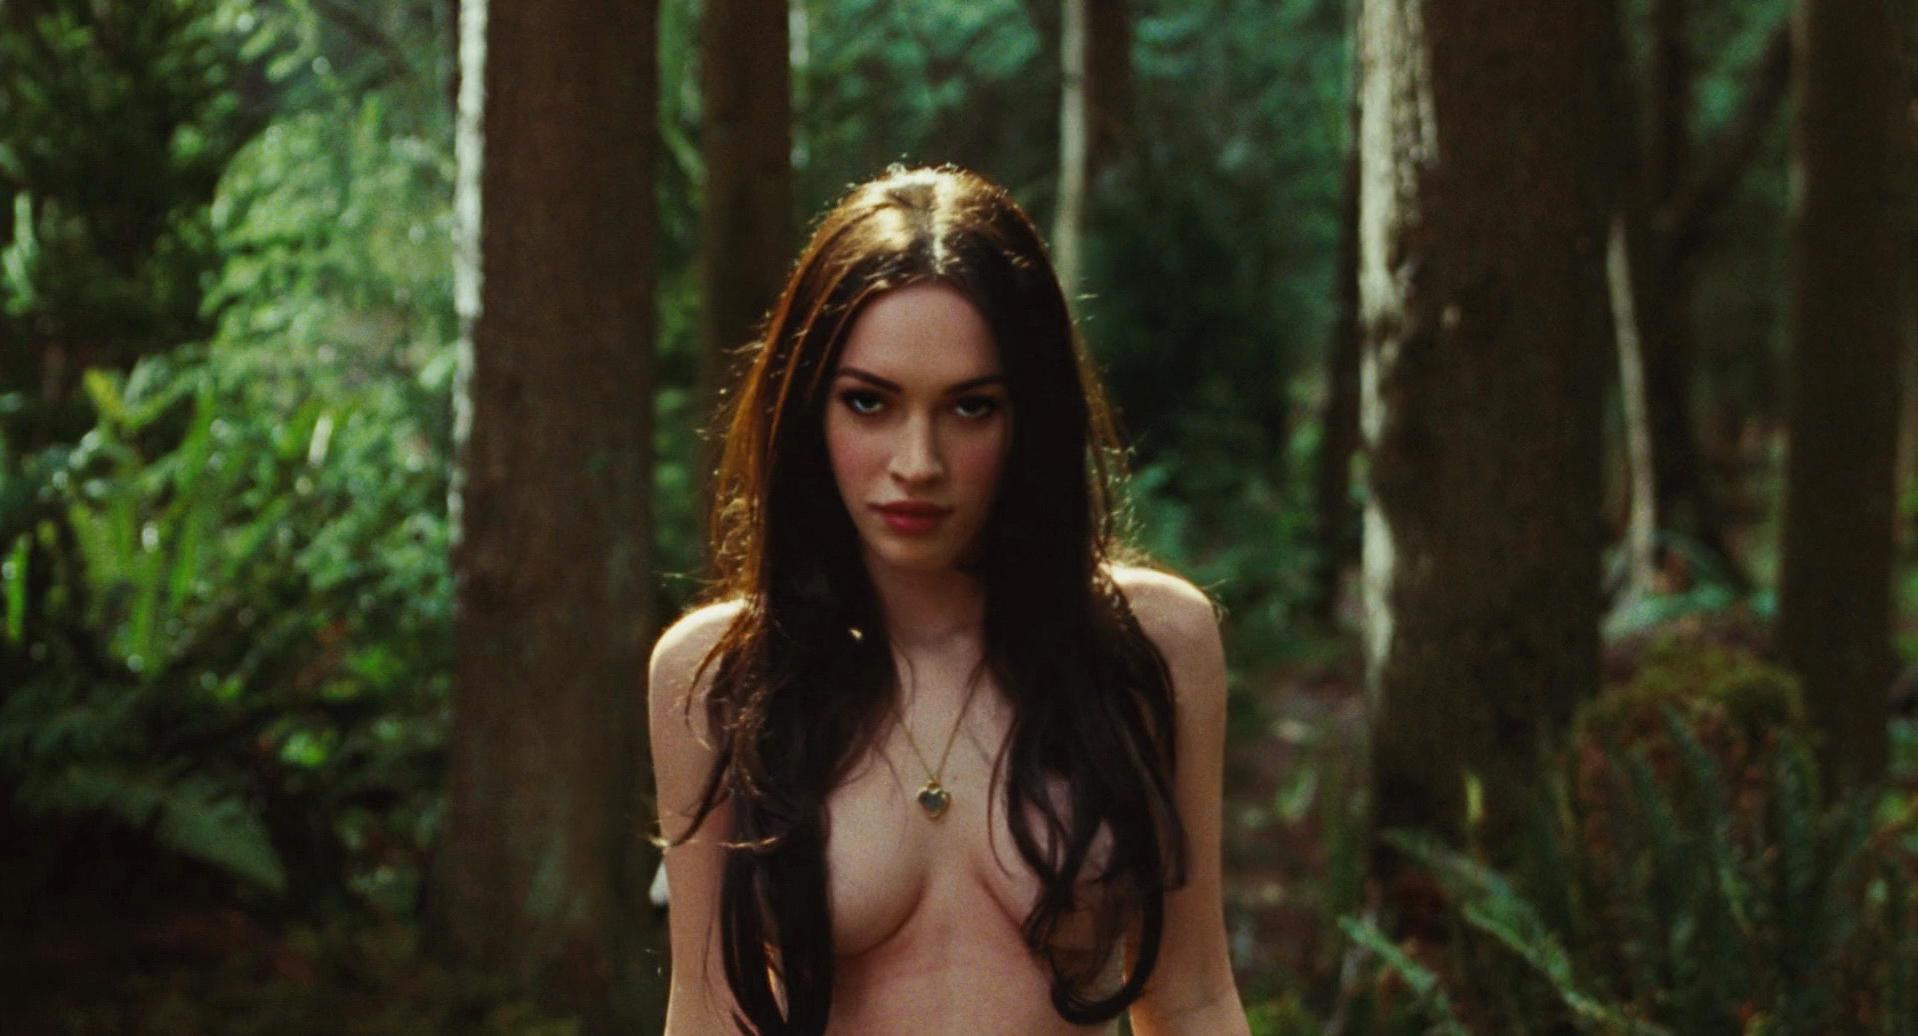 And Megan Fox having sex naked with lesbians von einem